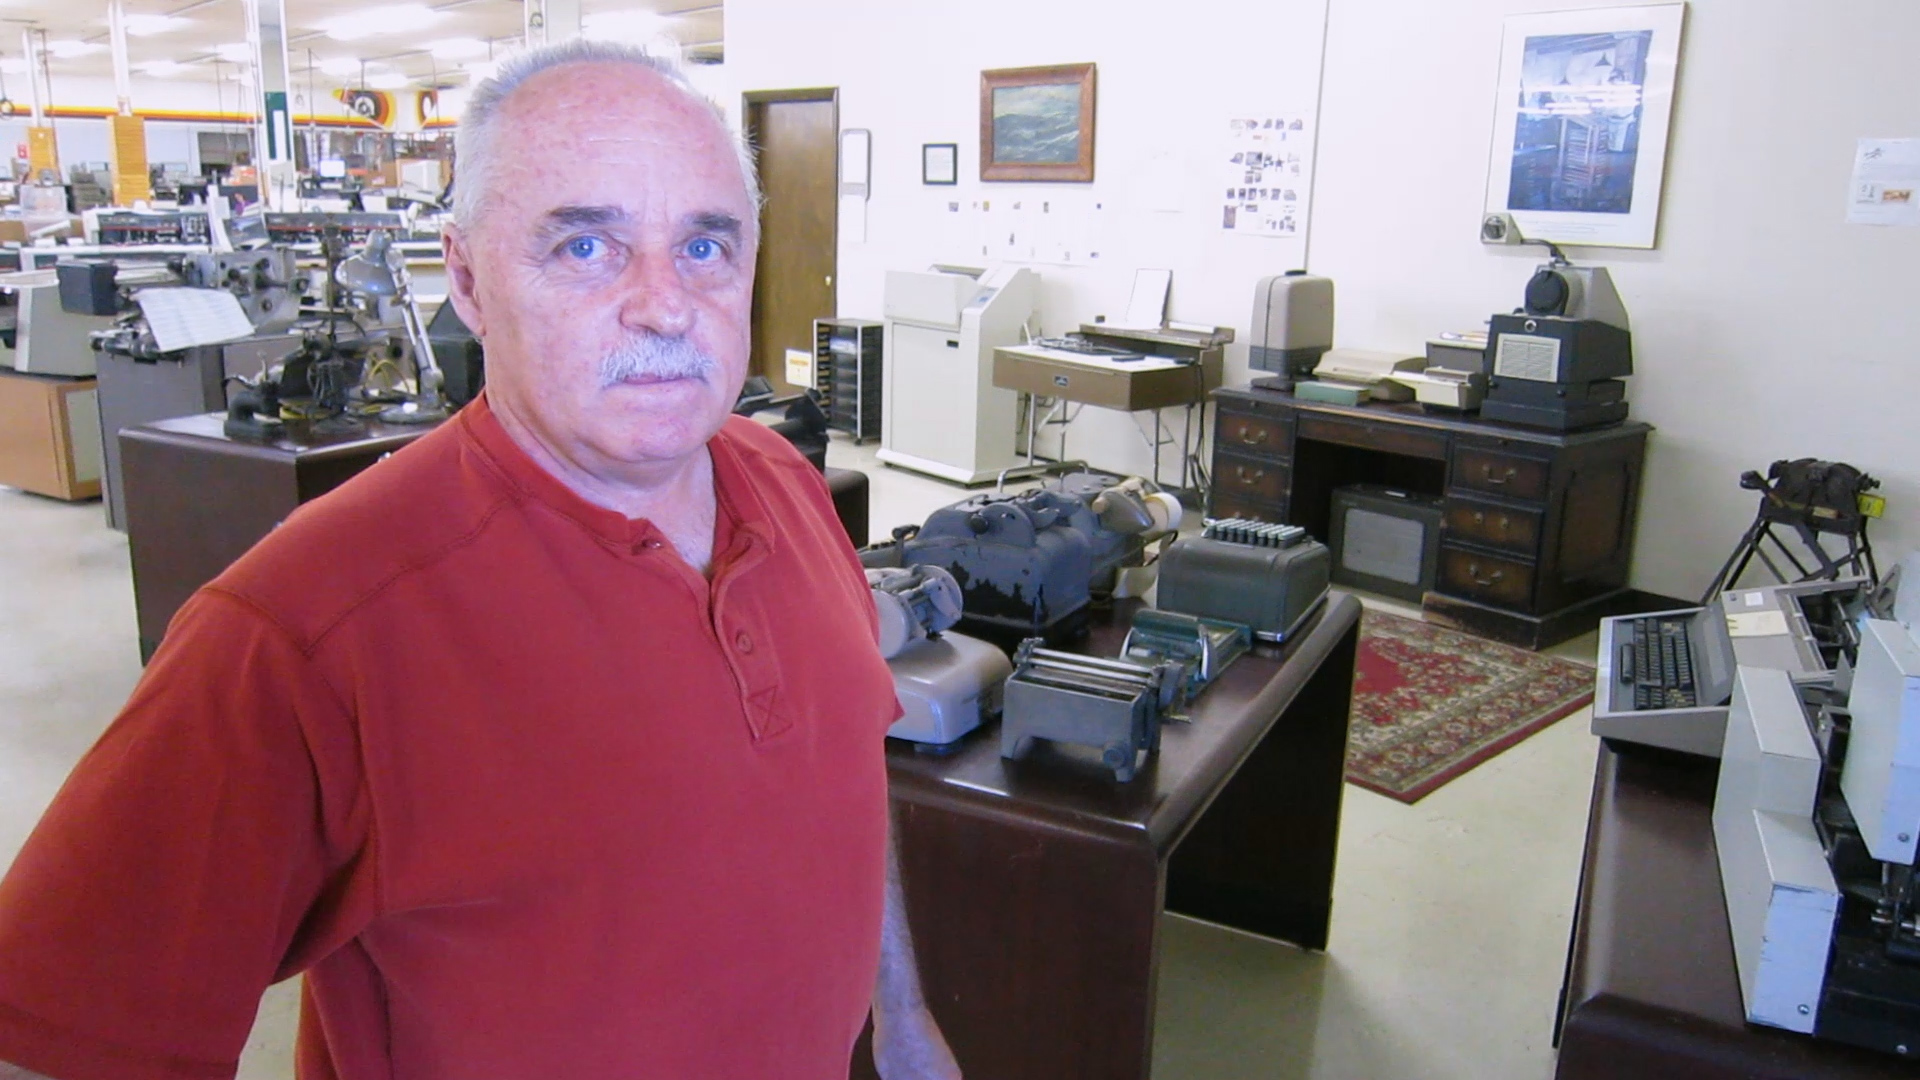 Video preview: Frank Visits a Mailing Museum